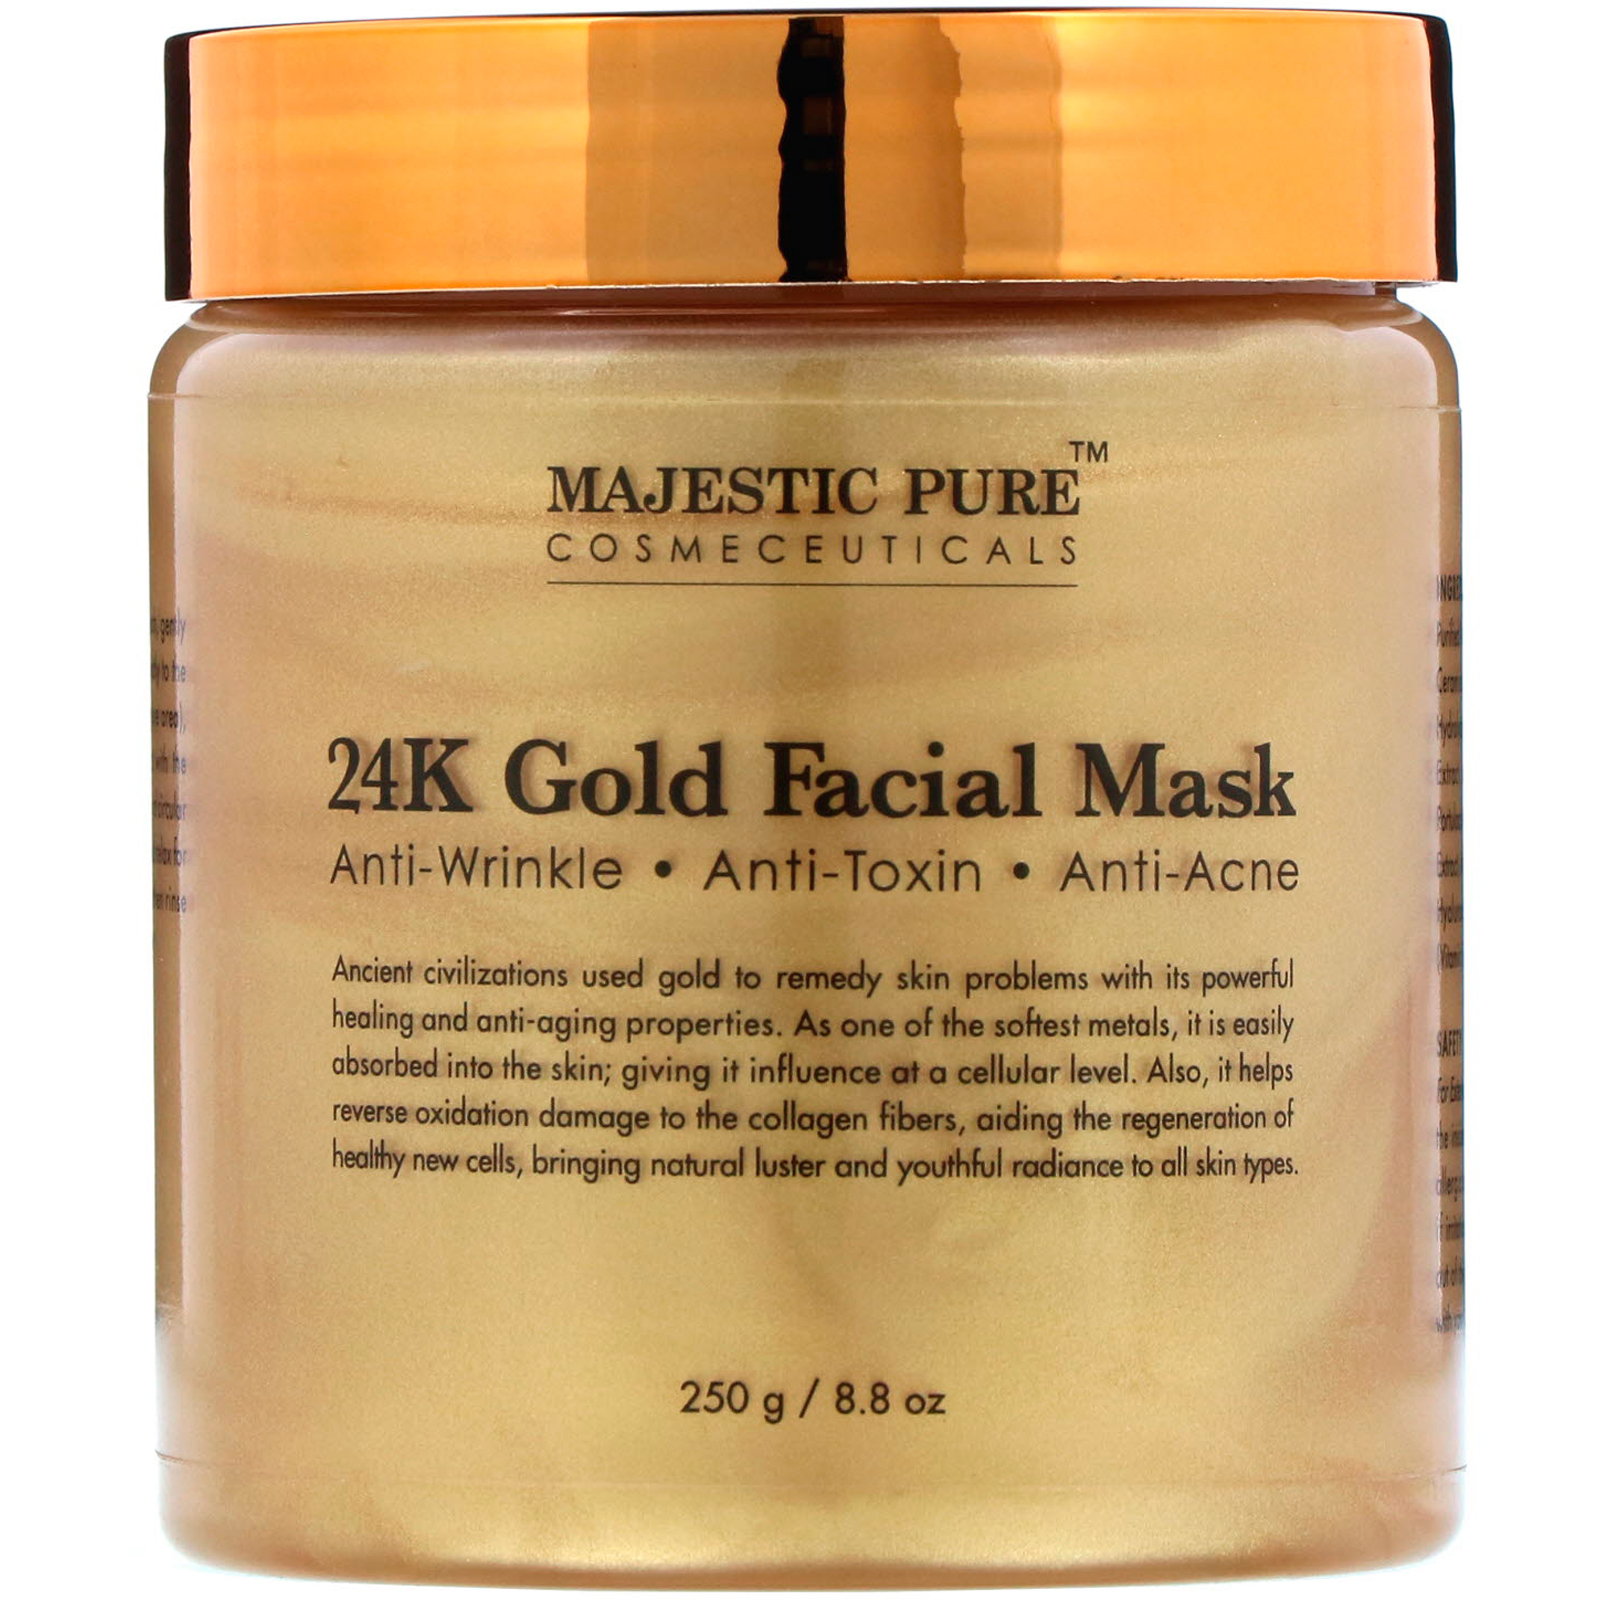 b9e0994b787 Majestic Pure, 24K Gold Facial Mask, 8.8 oz (250 g). By Majestic Pure. Click  to zoom